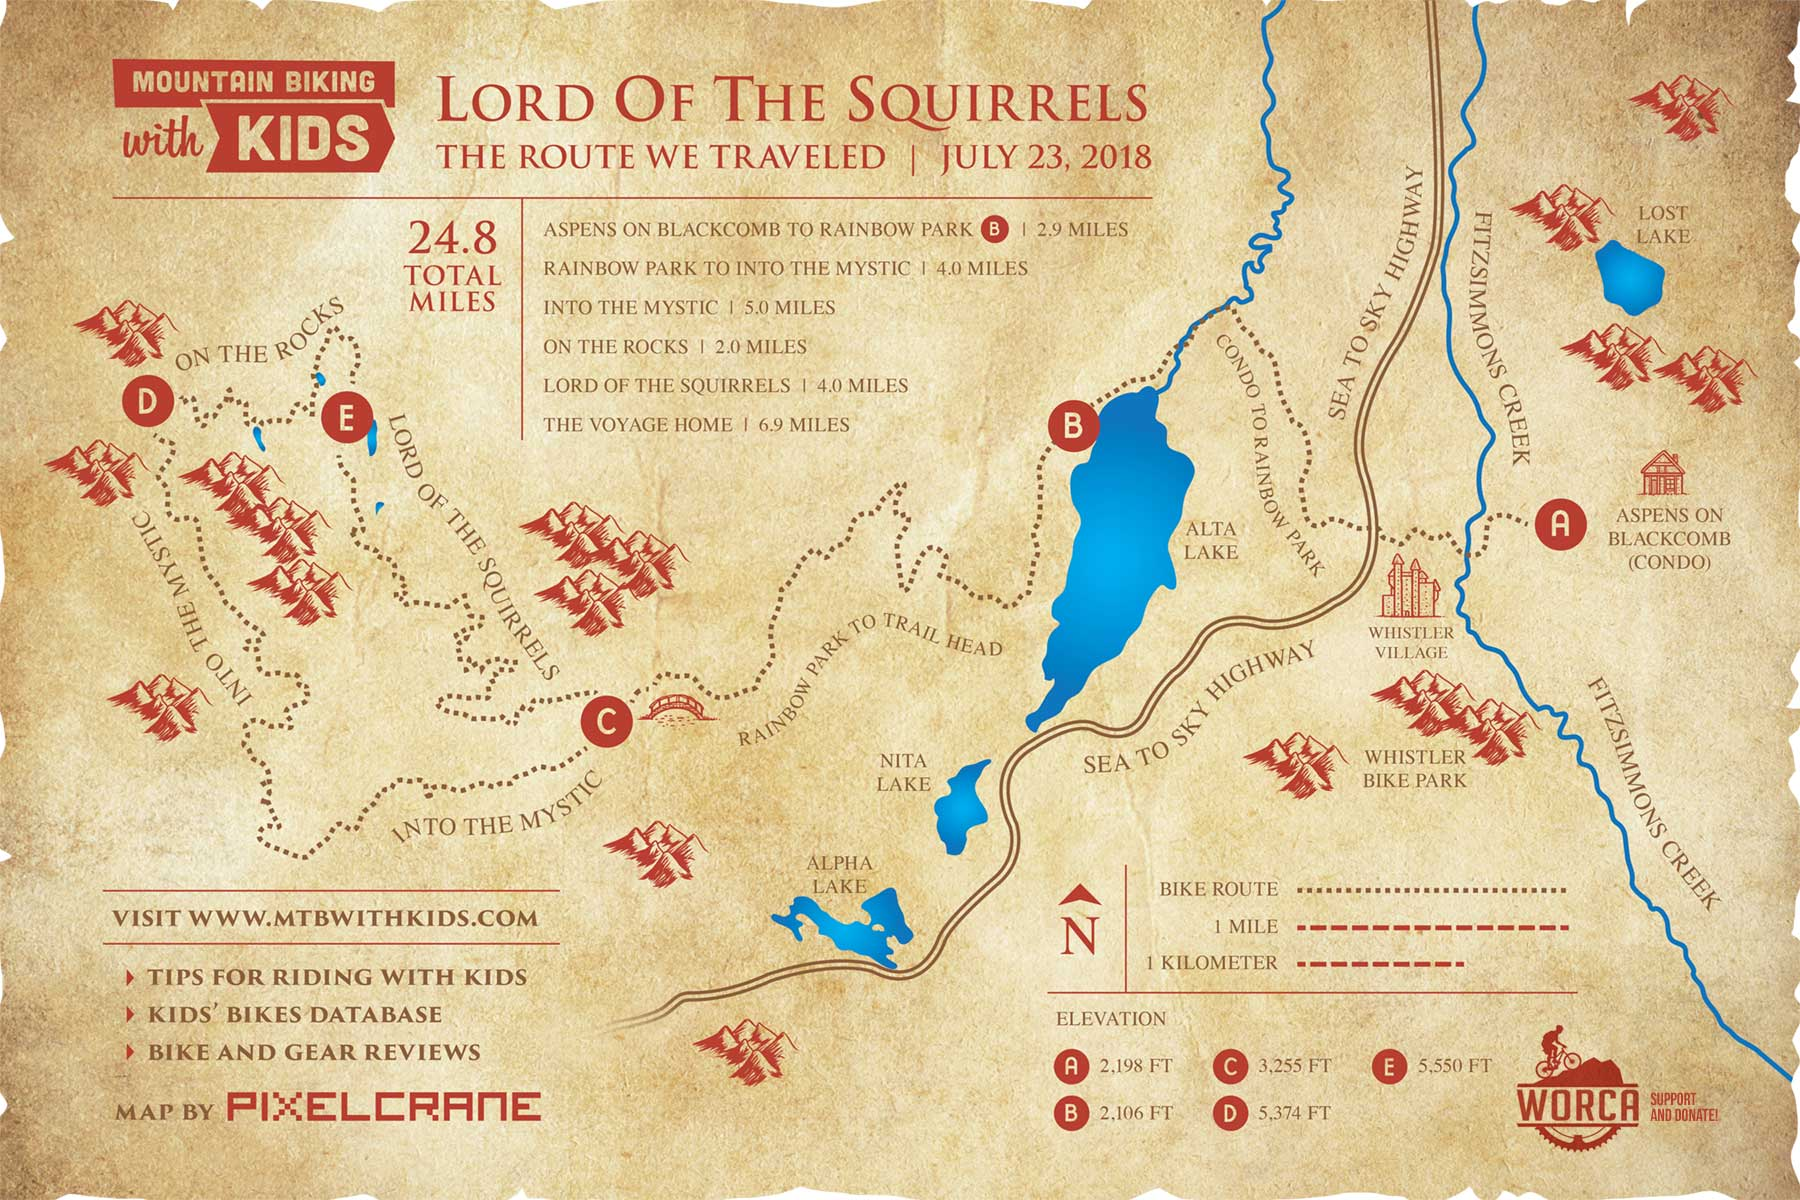 Lord Of The Squirrels map - MTB with Kids route